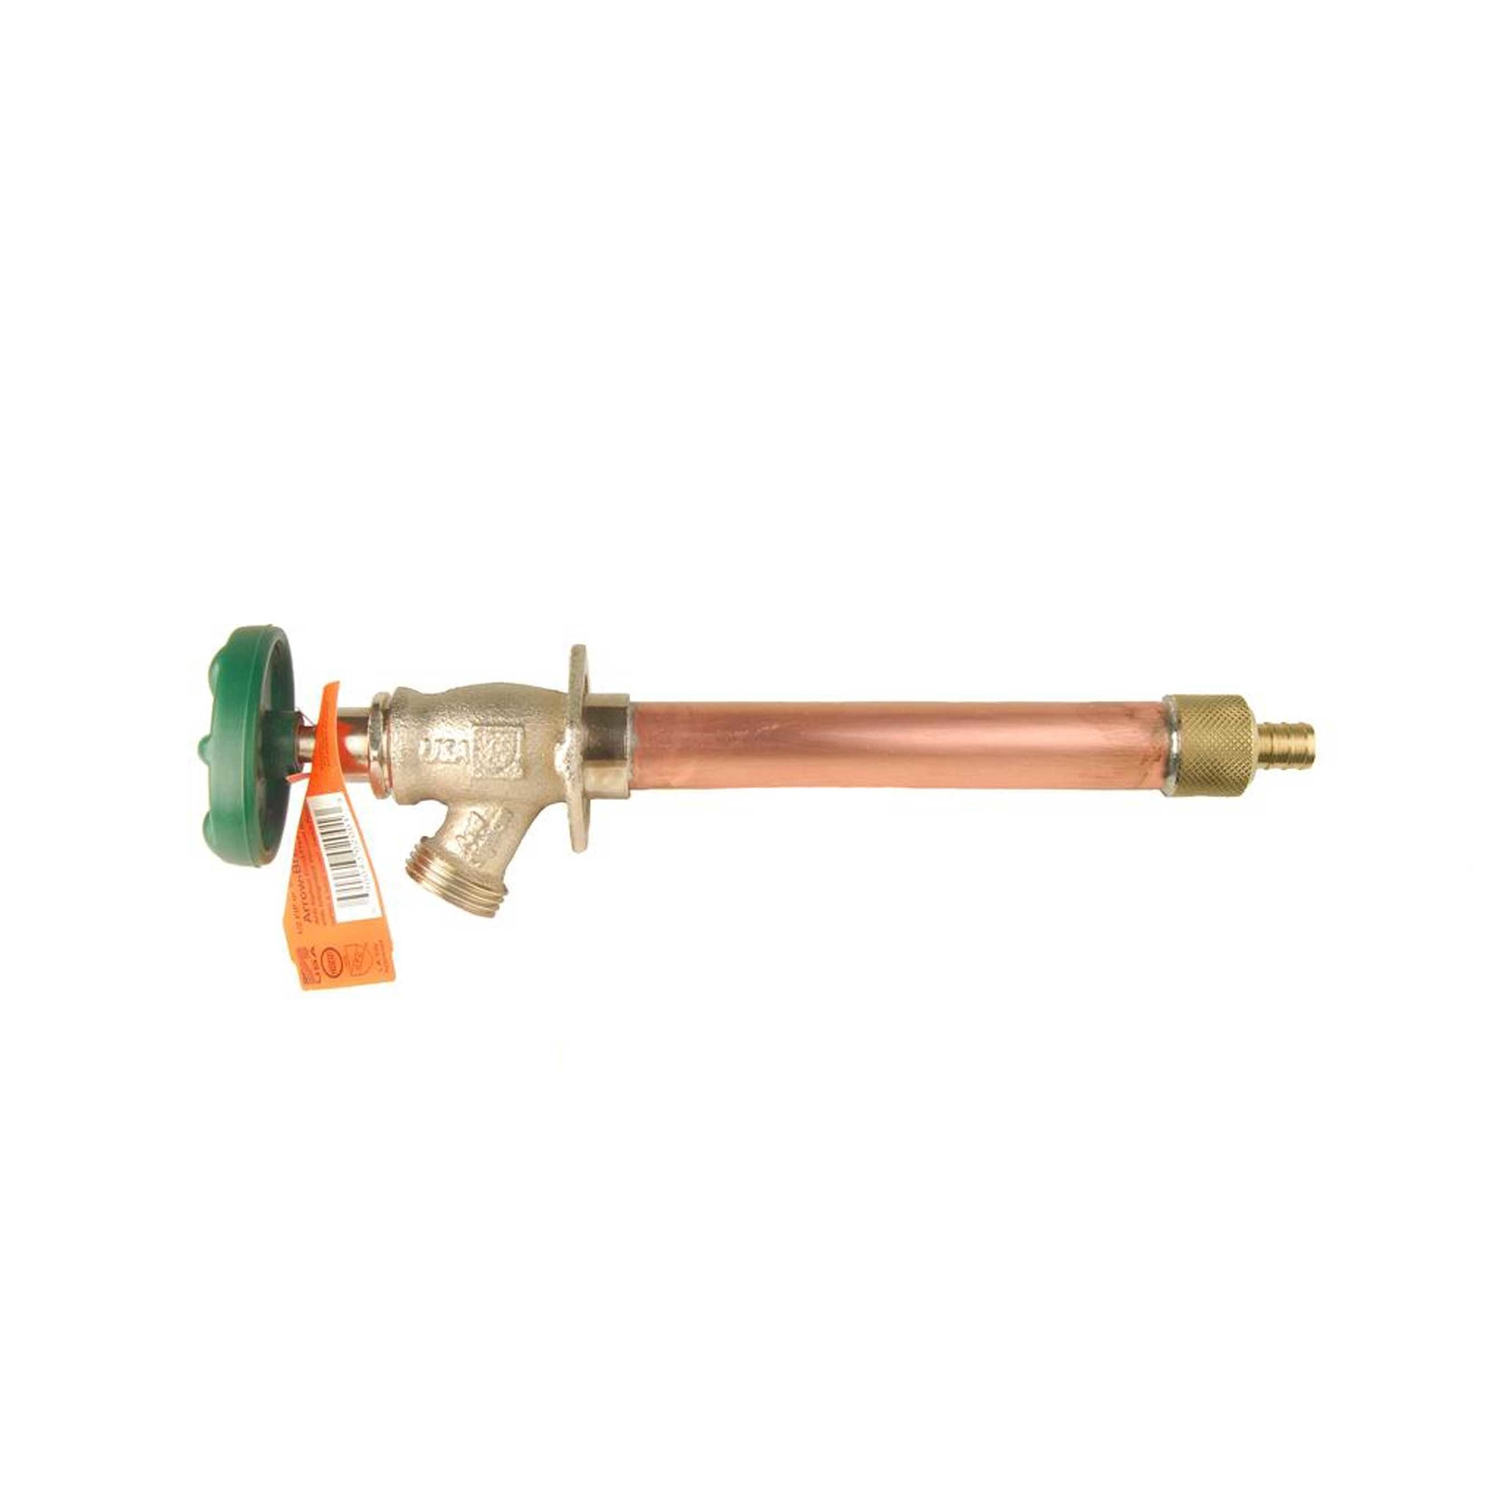 Arrowhead  1/2 in. PEX  Dia. x 3/4 in. Dia. Hose  13 in. Brass  Frost-Proof Wall Hydrant  Antisiphon